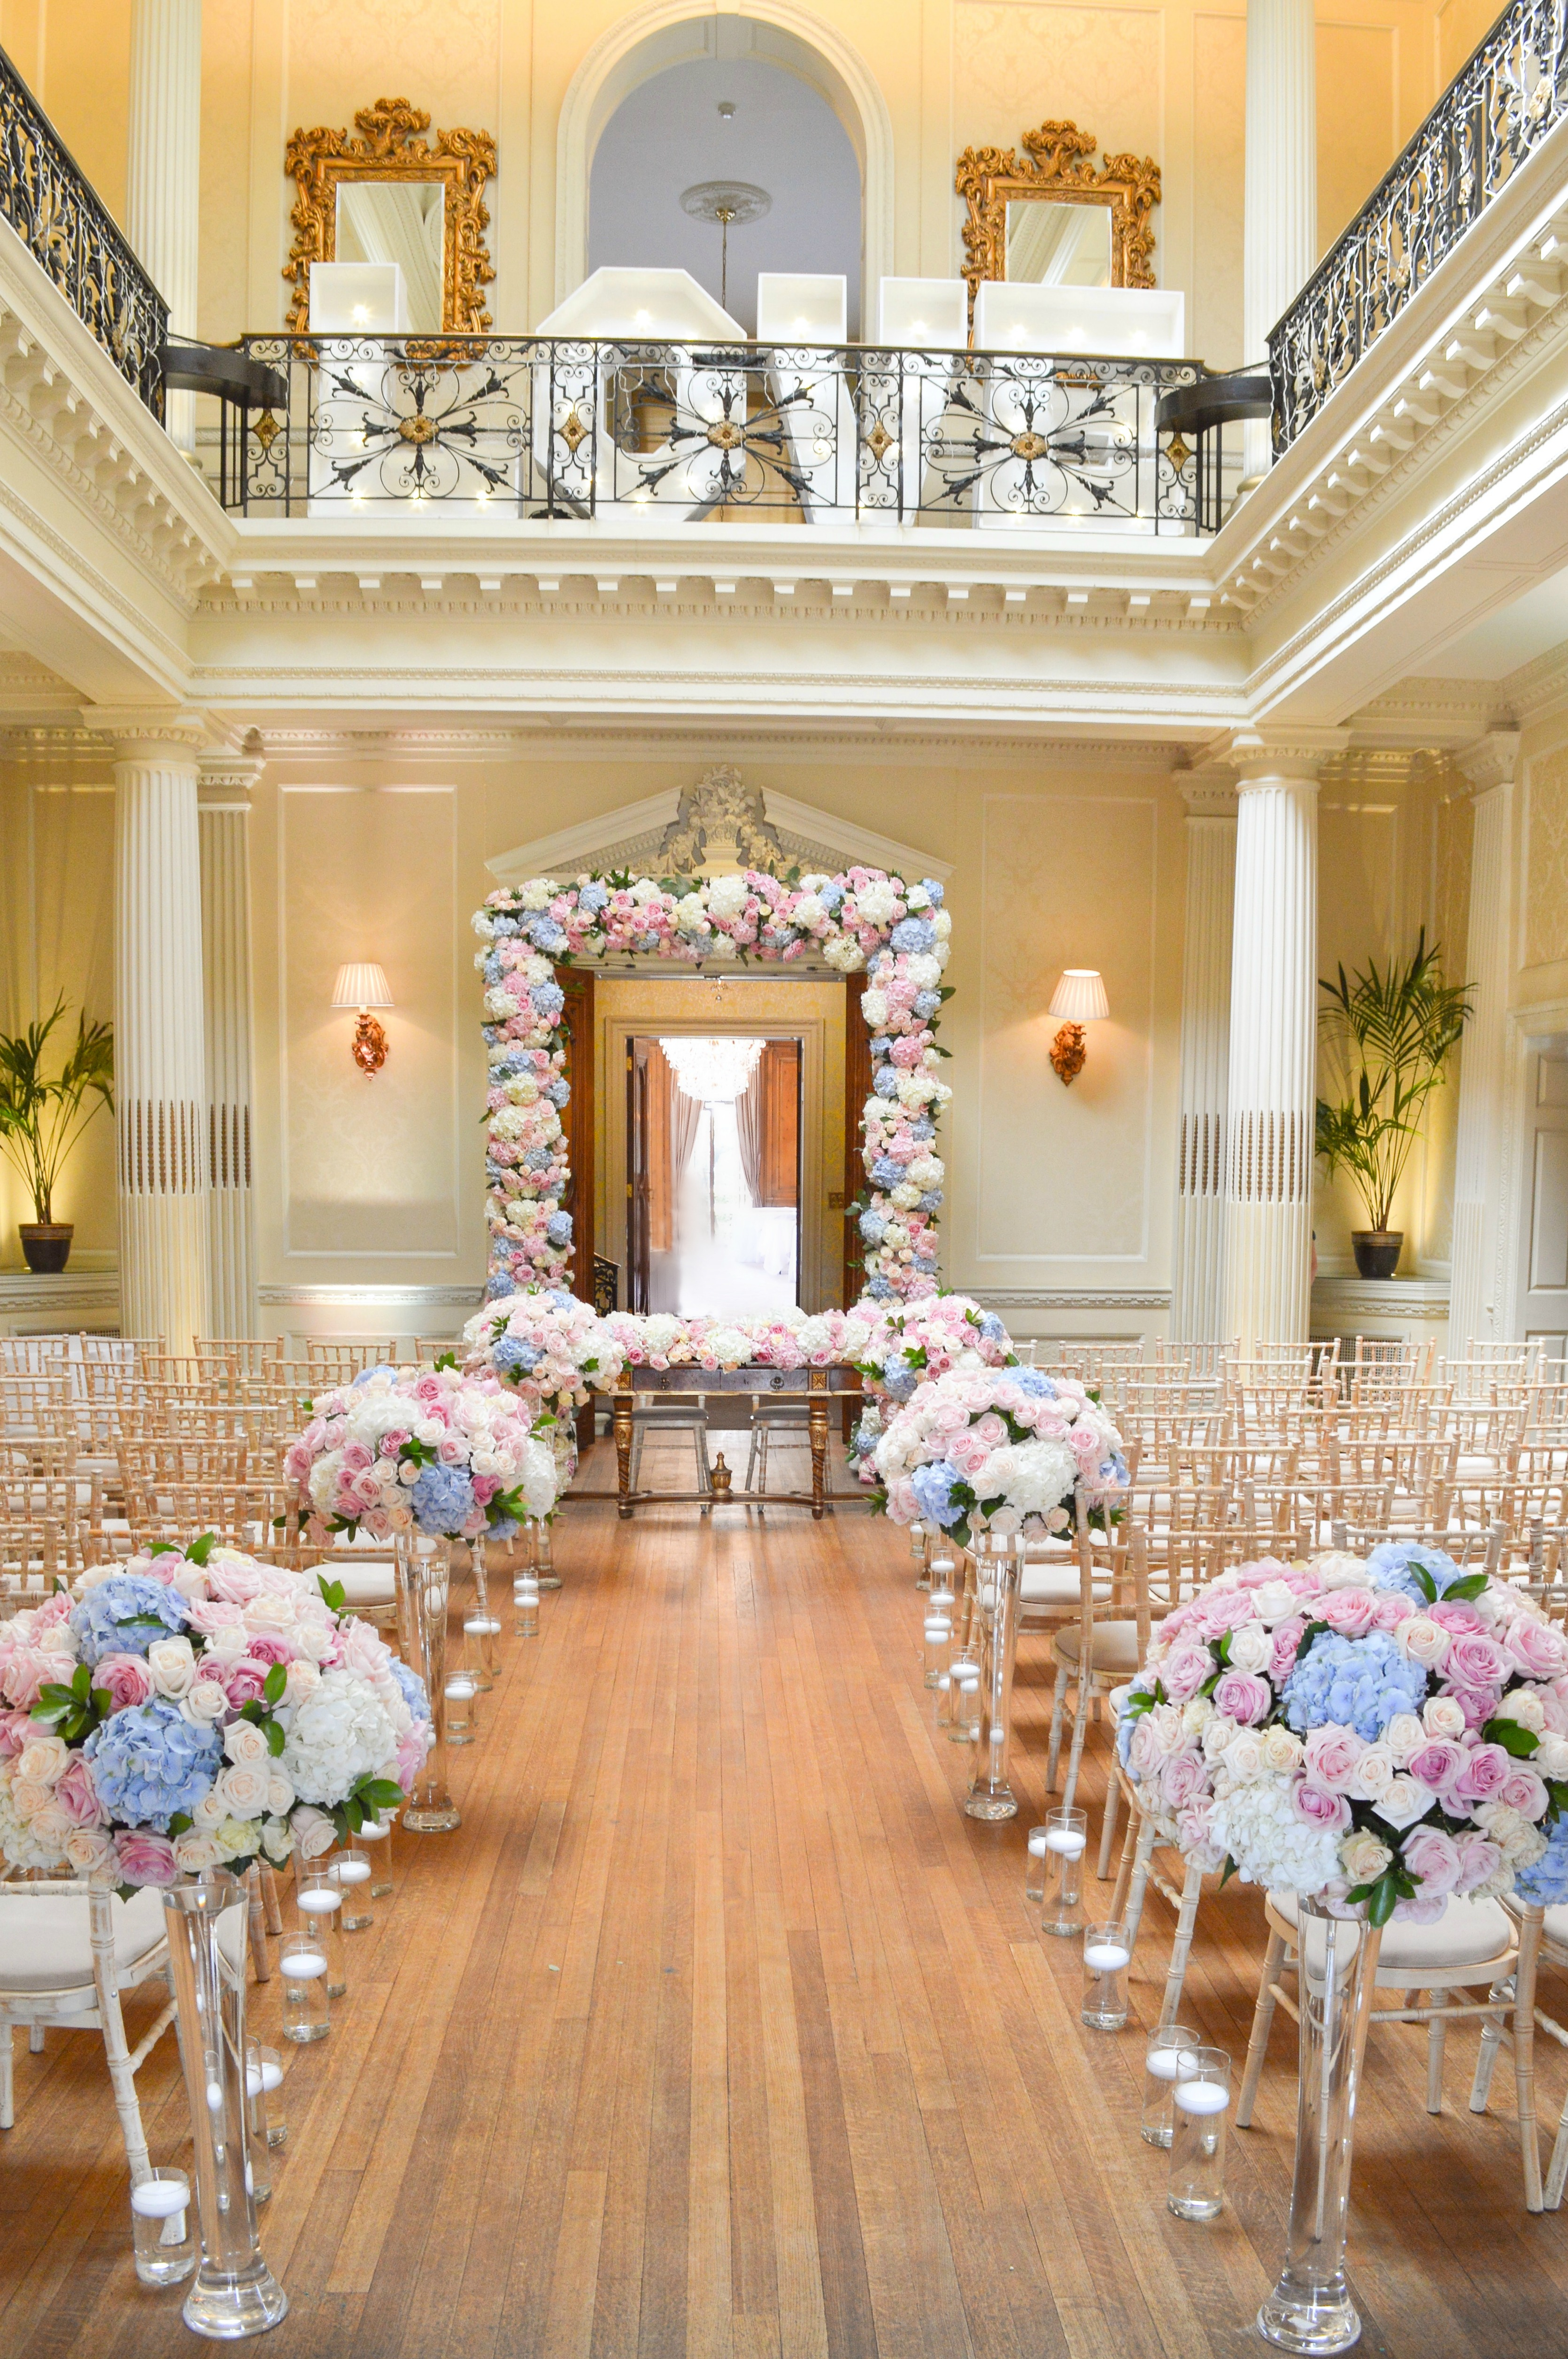 Dusty blue and pink wedding flowers arch registrar table head toptable floral garland wedding ceremony aisle floating candles Cherie Kelly cakes London Hedsor House